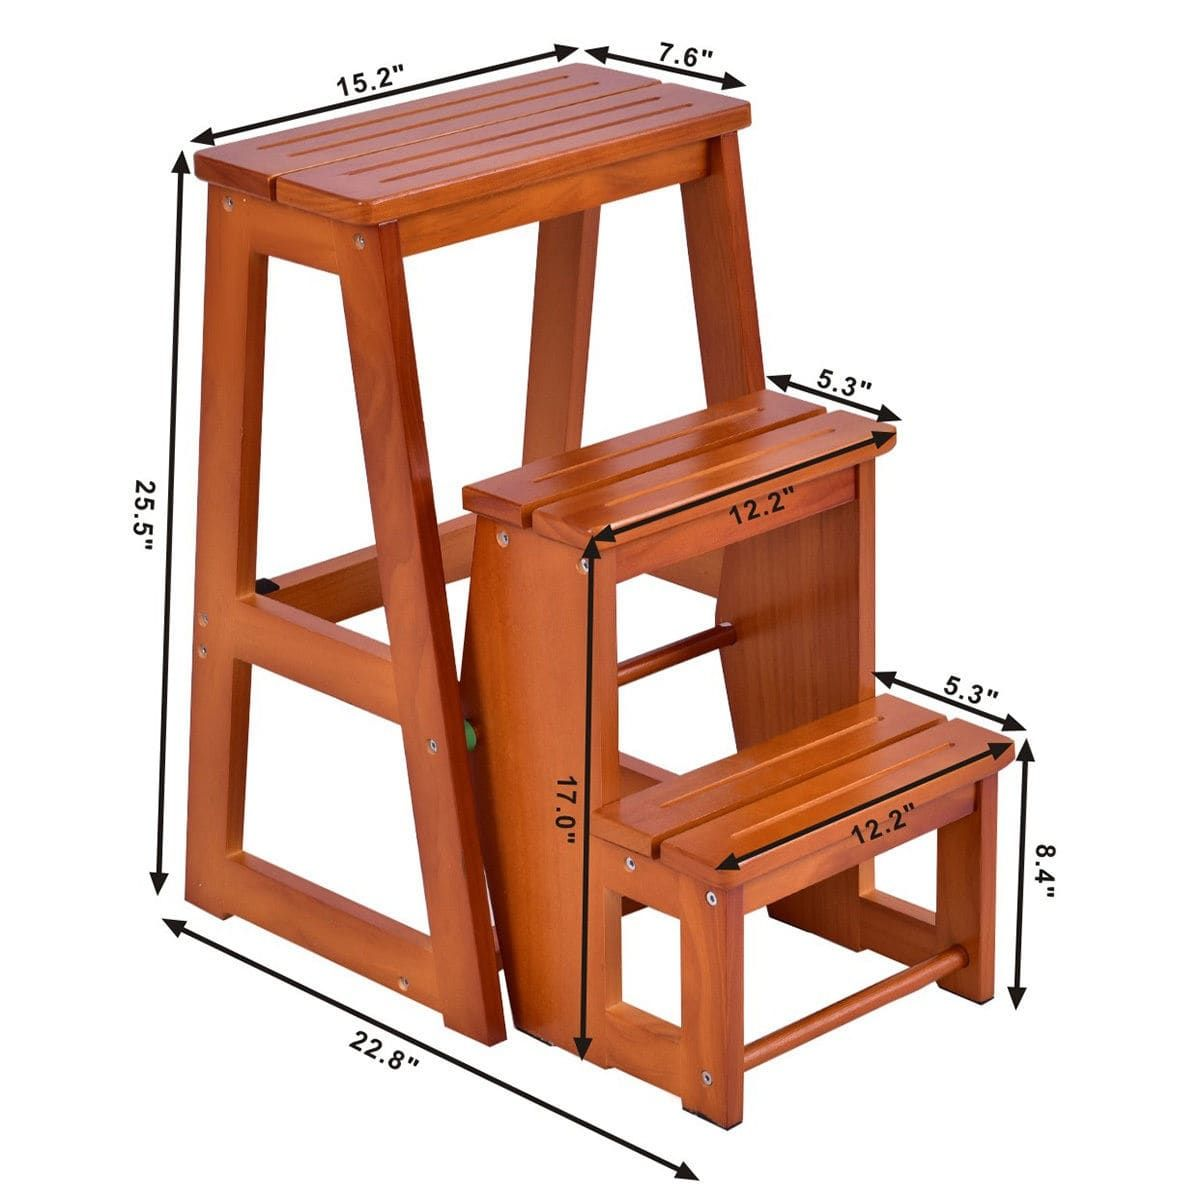 Amazing Wood Step Stool Folding 3 Tier Ladder Chair Bench Seat Alphanode Cool Chair Designs And Ideas Alphanodeonline